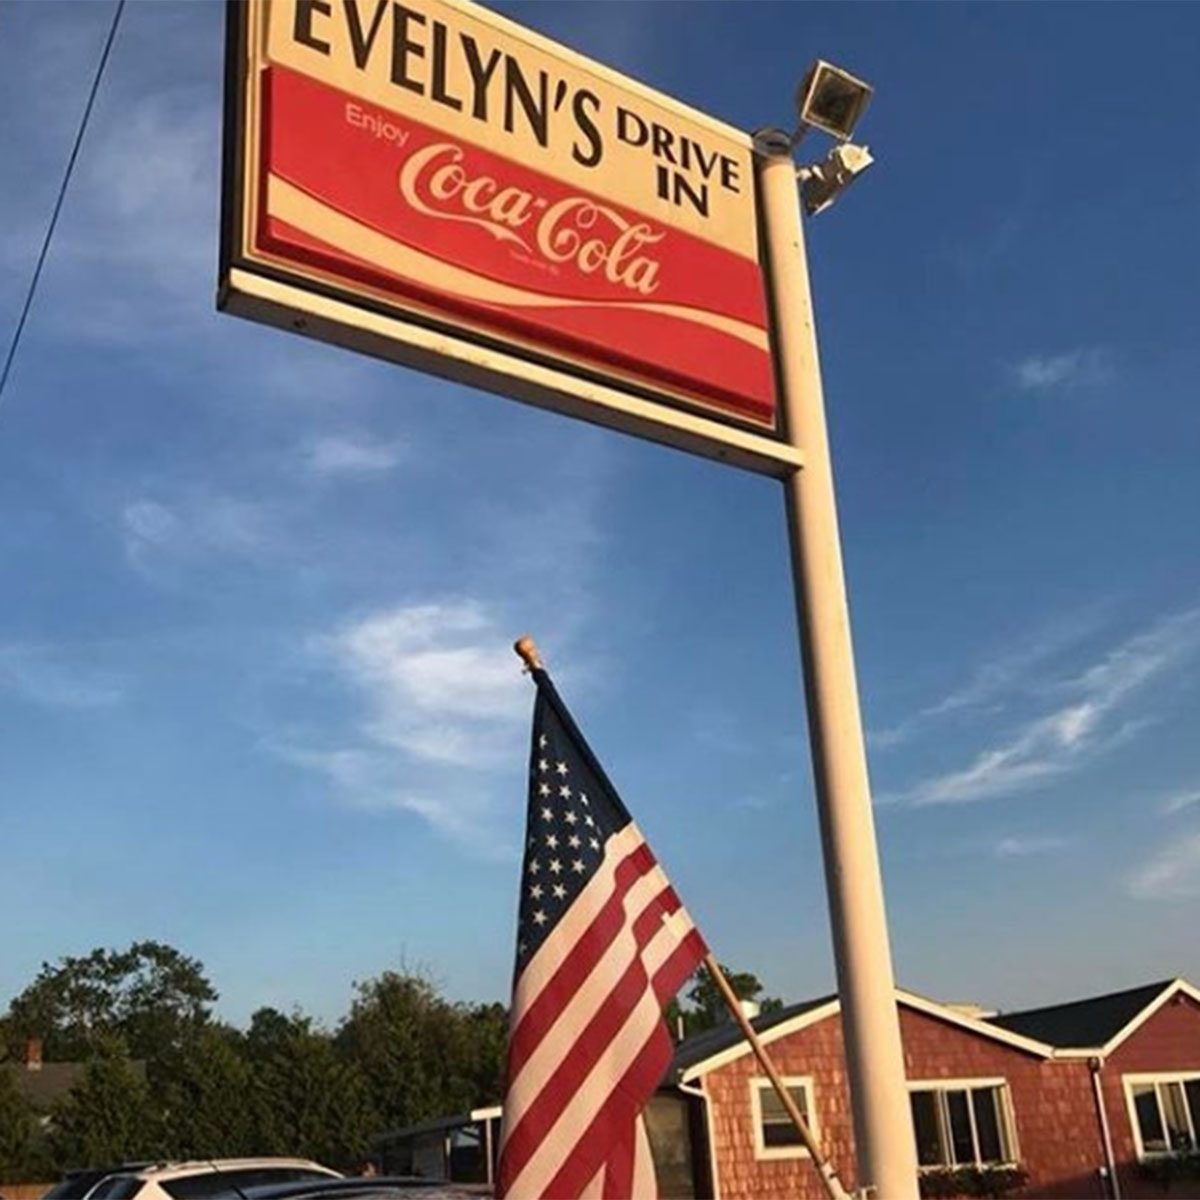 EVELYN'S DRIVE-IN